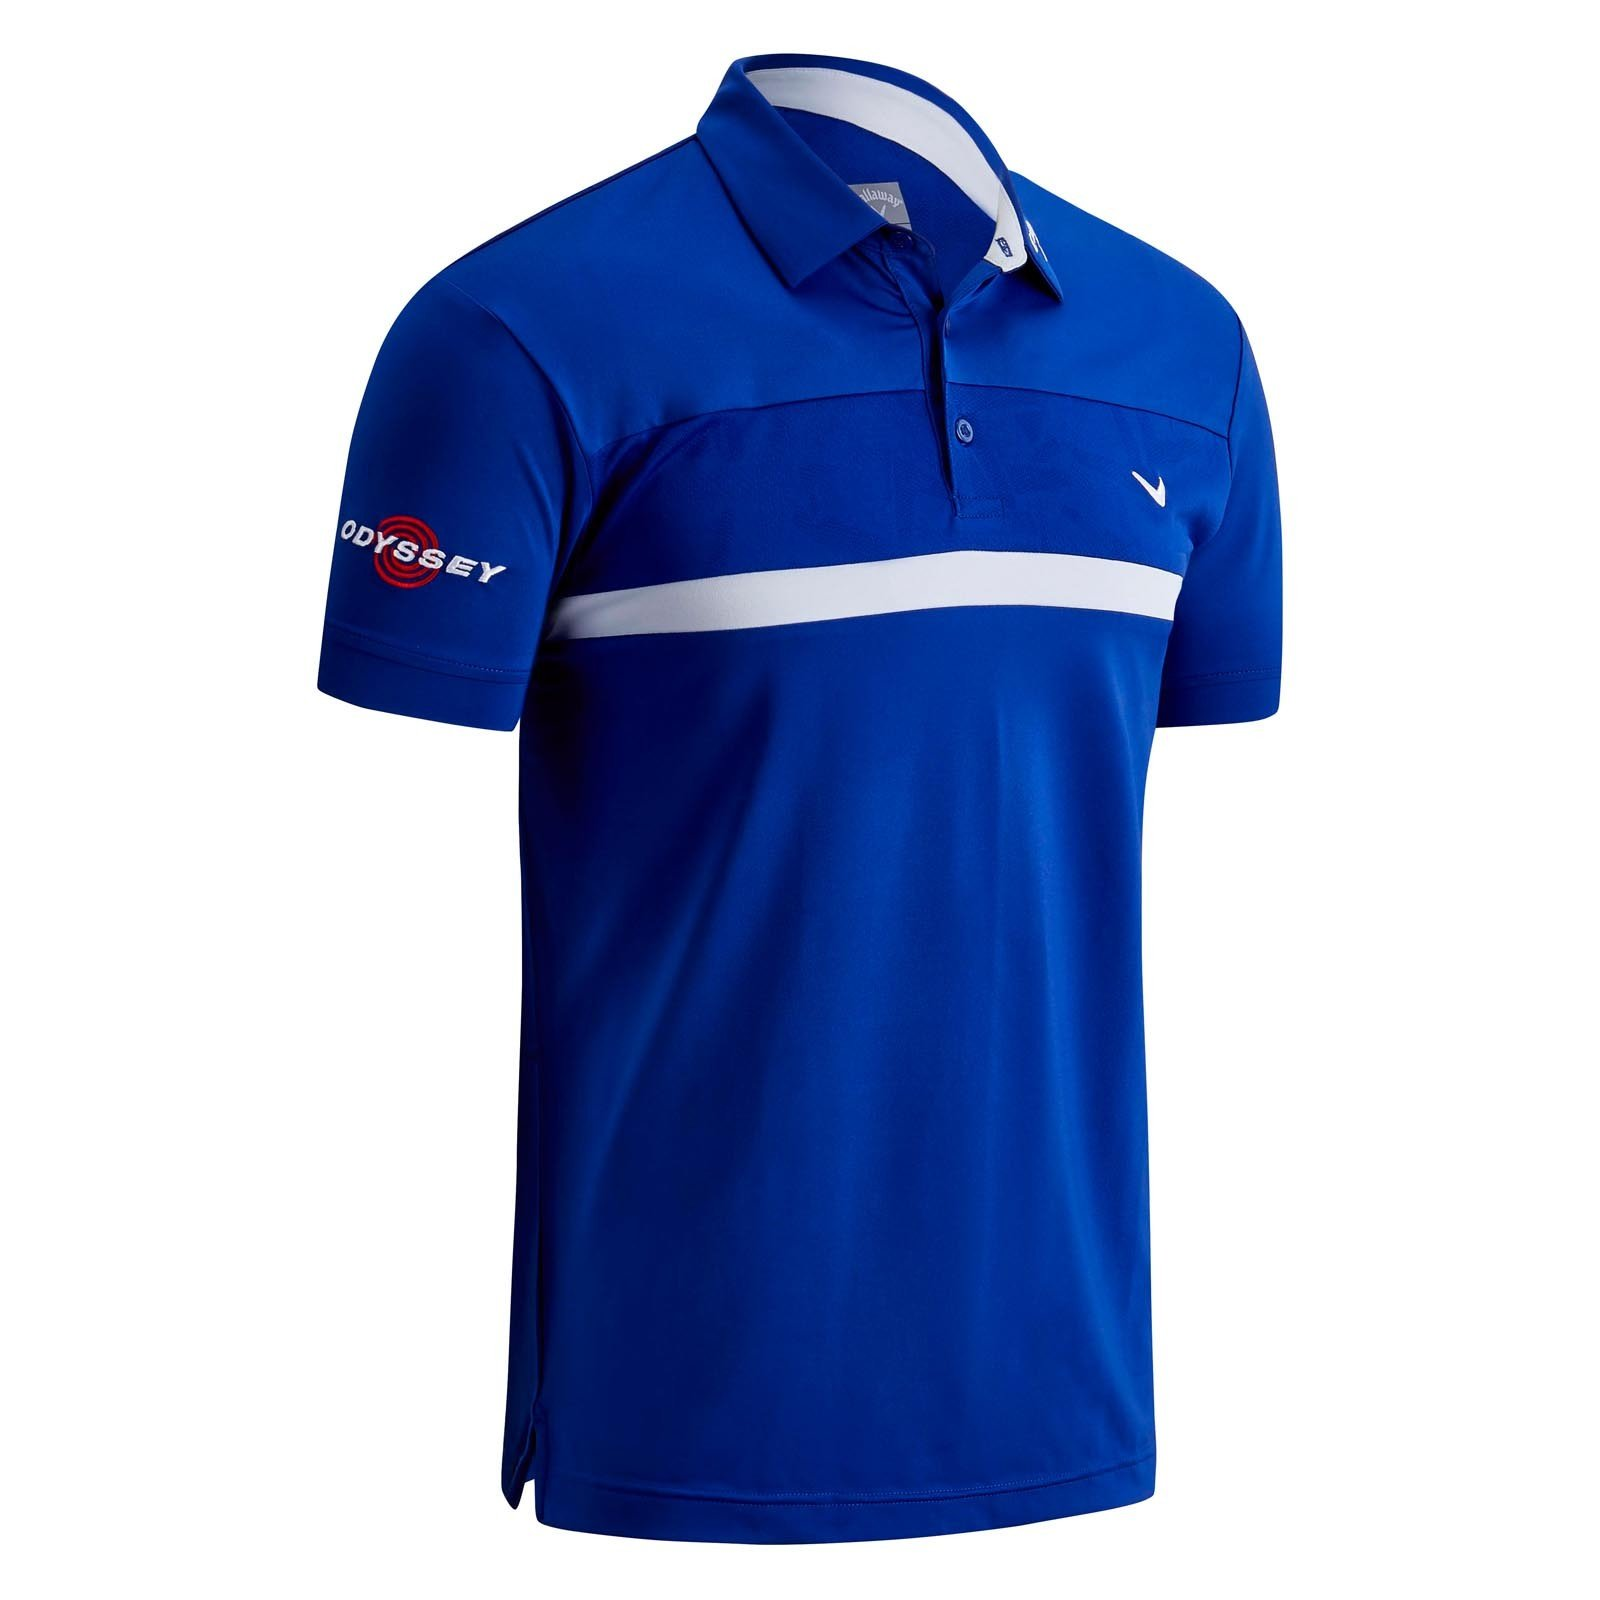 Callaway Premium Tour Players Polo Shirts